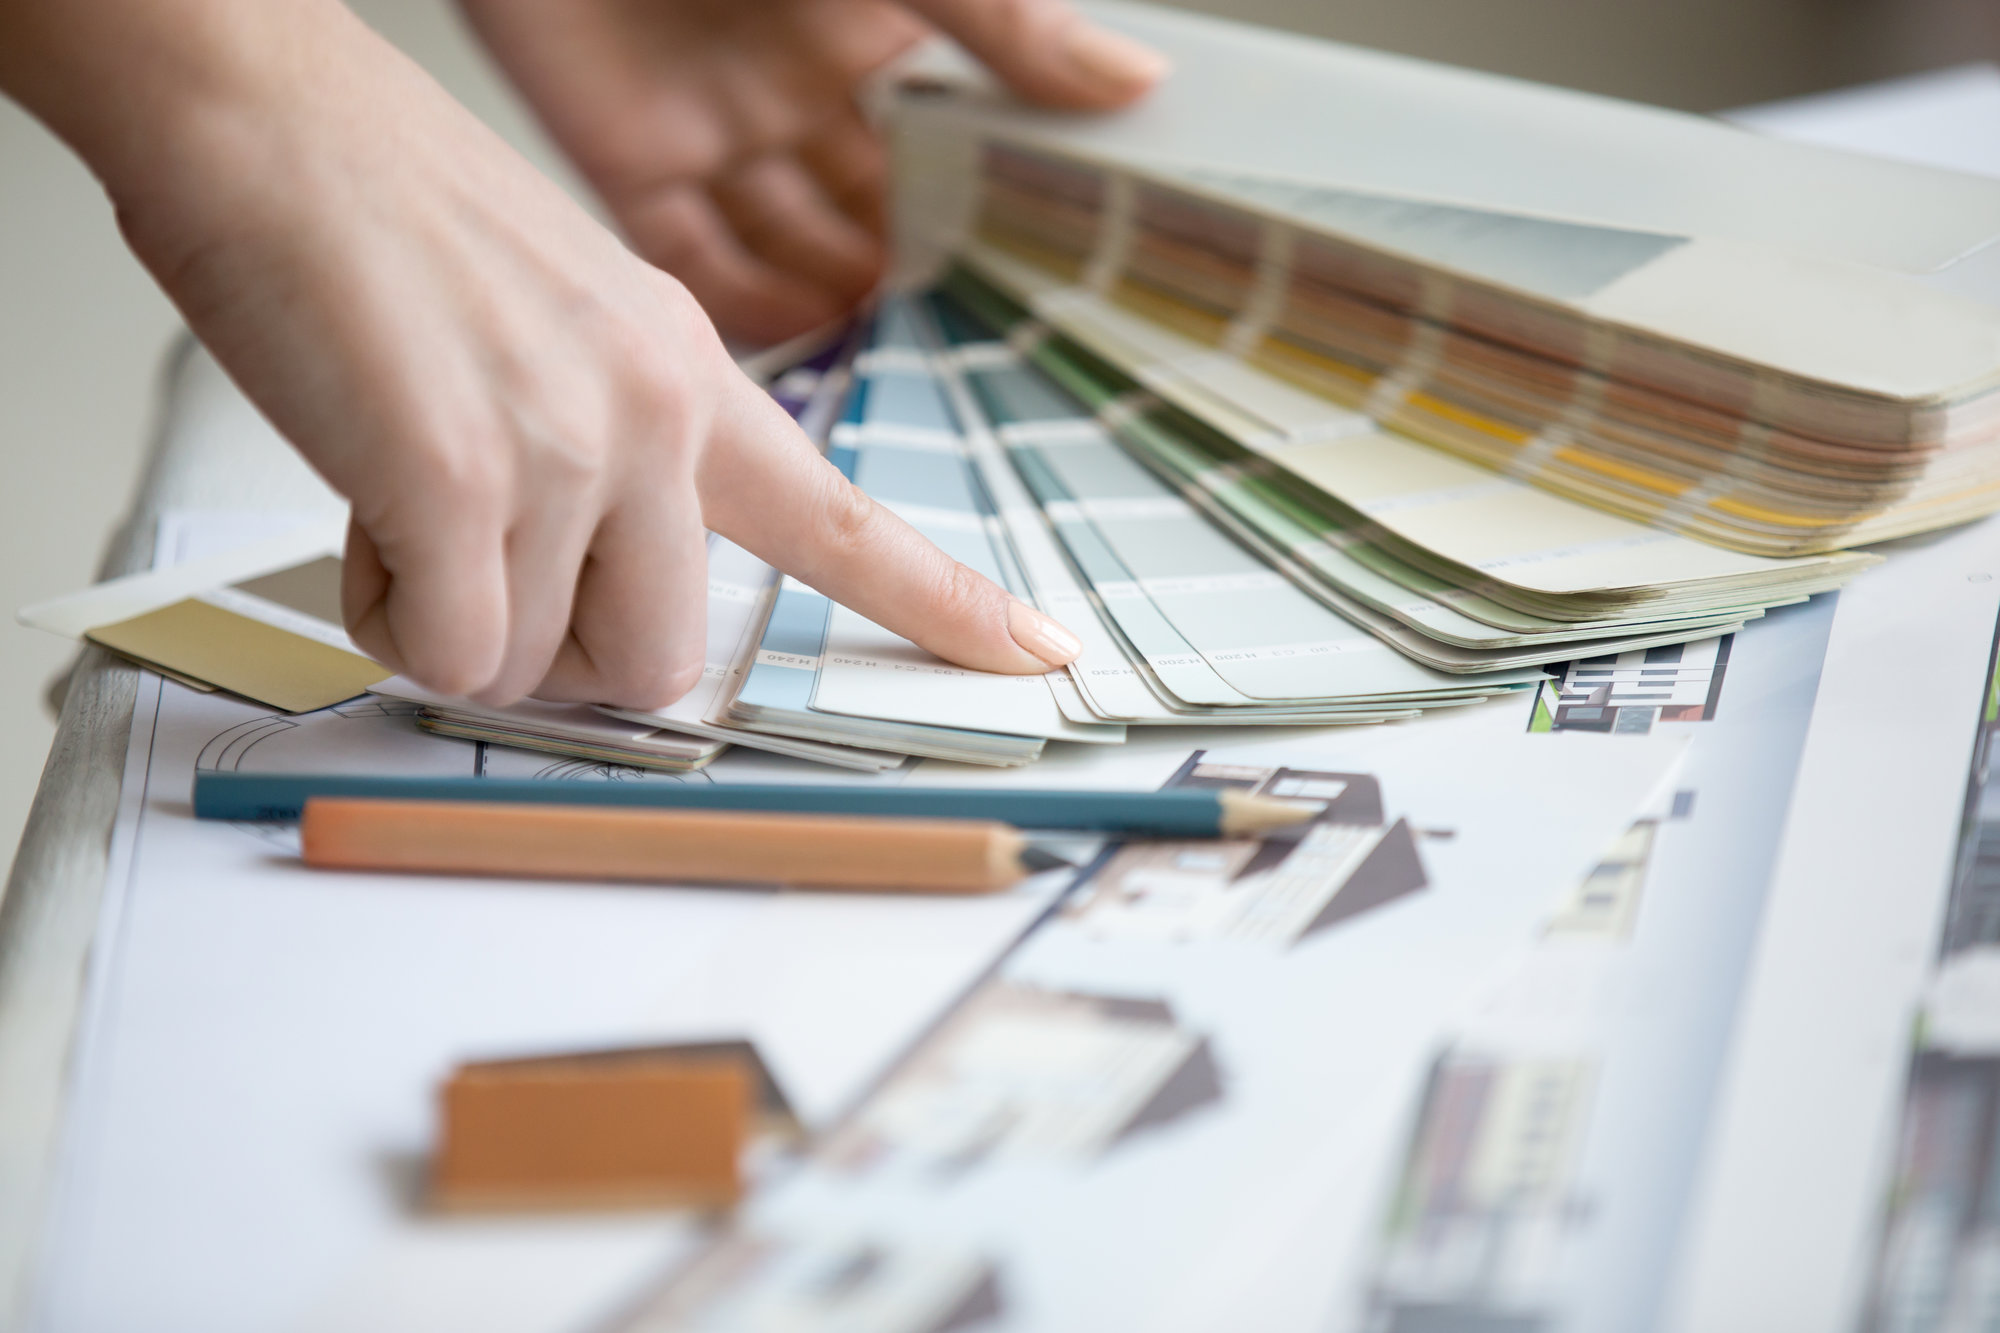 bigstock-Young-Designer-Working-With-Co-124495847.jpg